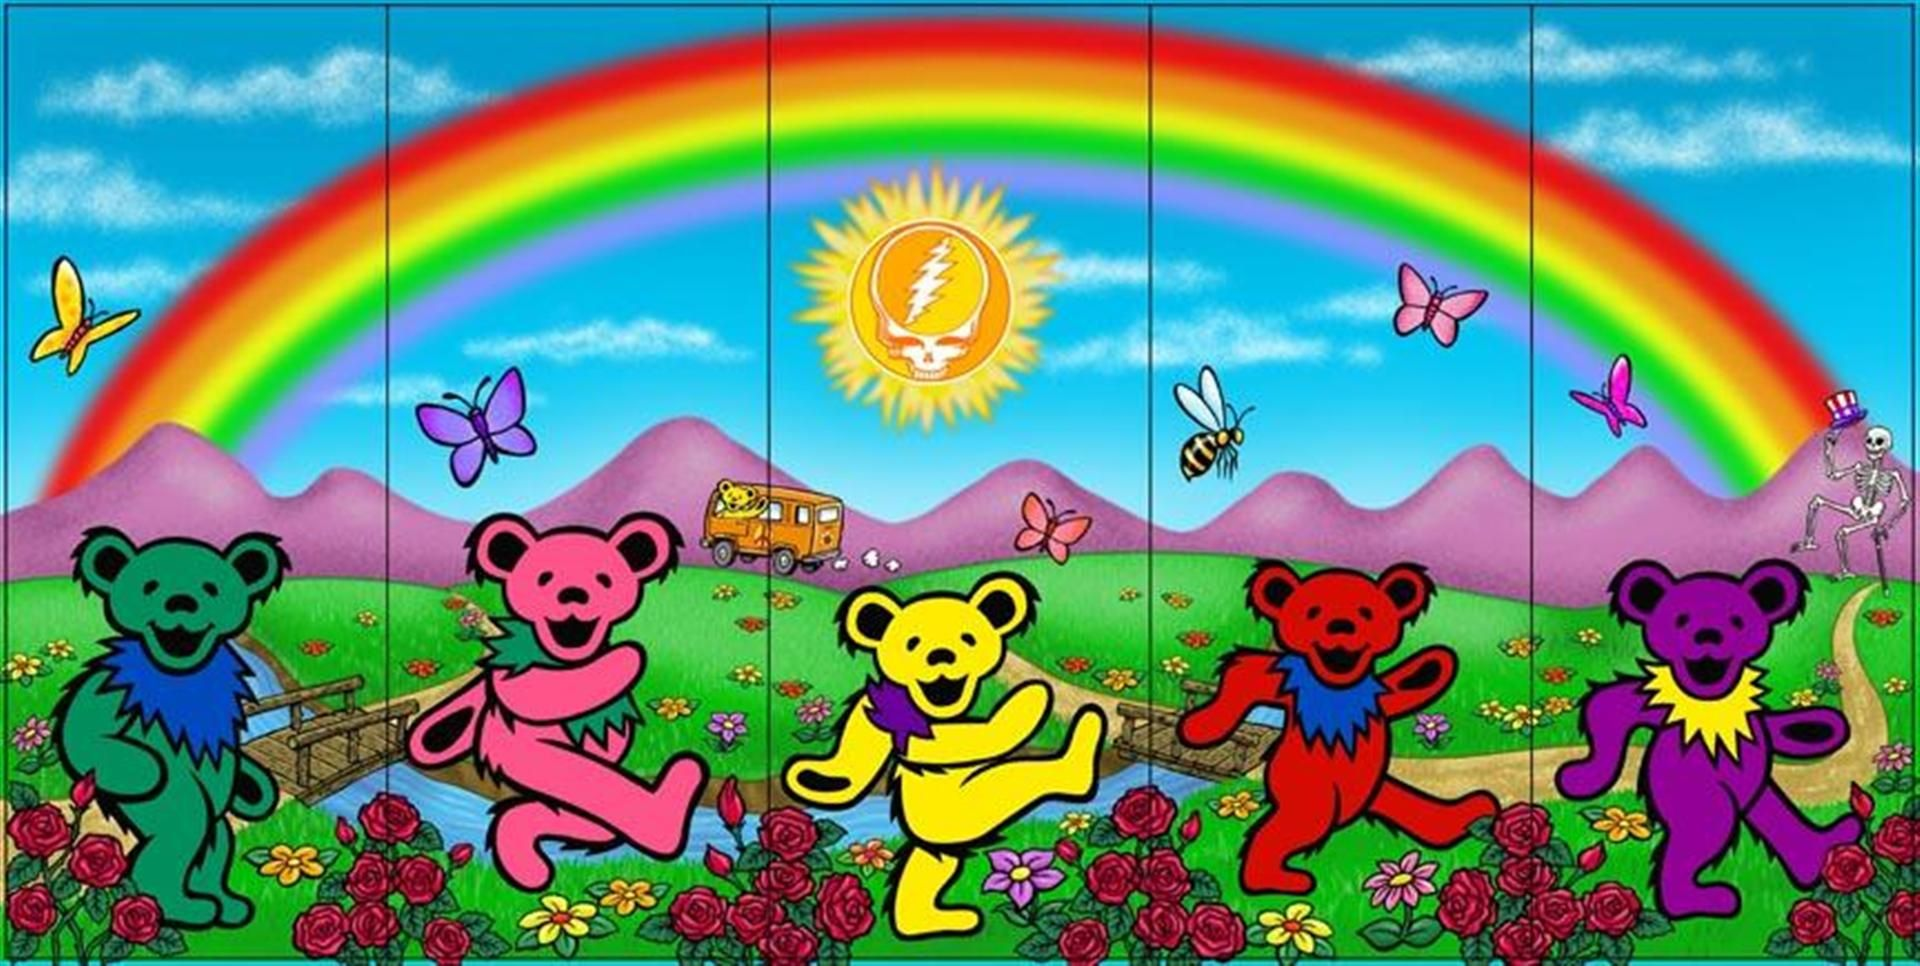 Grateful Dead Backgrounds Grateful Dead Wallpaper Grateful Dead Bears Grateful Dead Dancing Bears